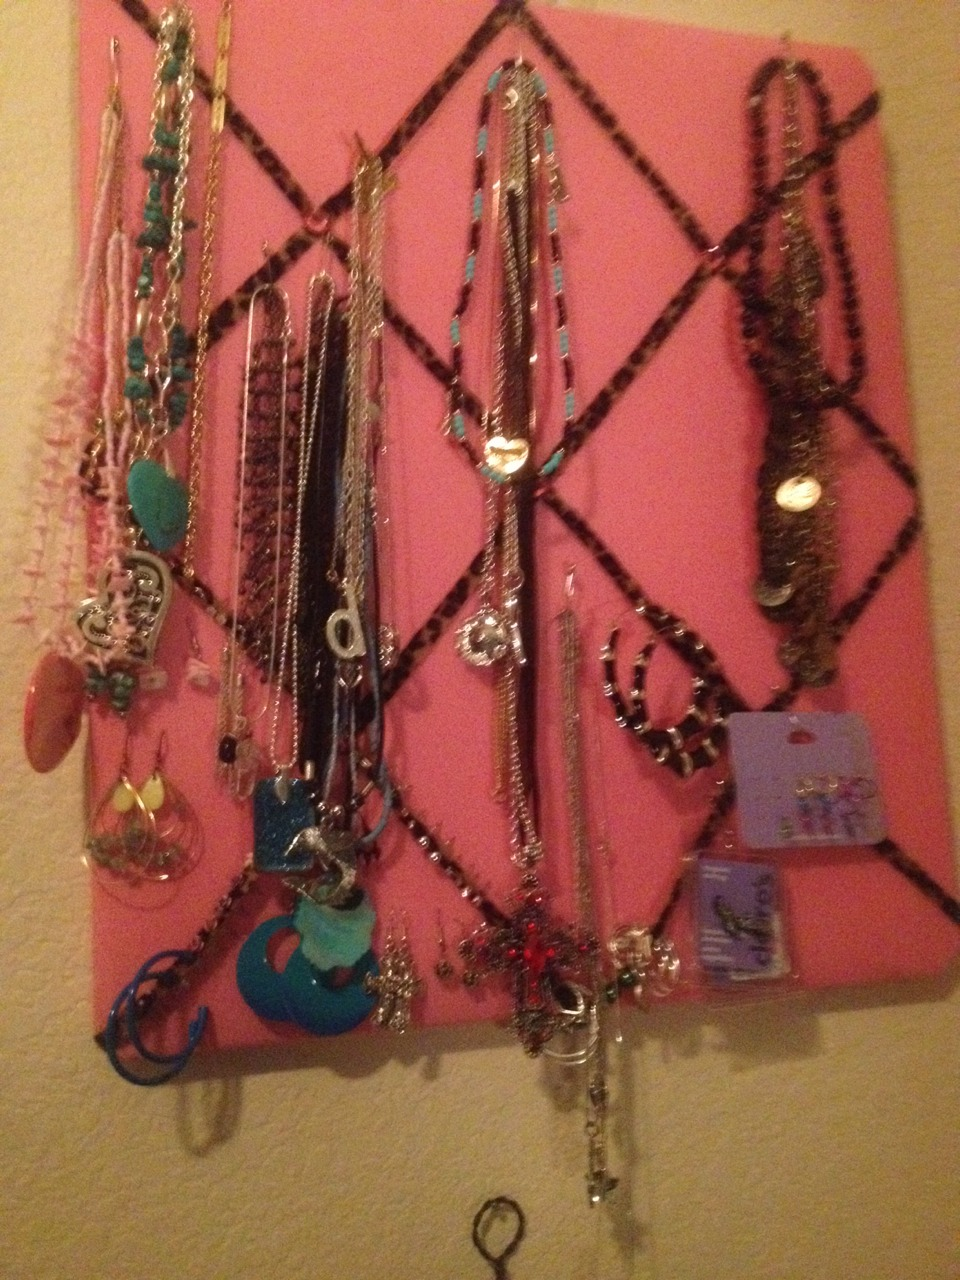 For my earrings I just stuck the studs and hoops through the ribbons and the other earrings went into the board itself. Then I just used safety pins to hand my necklaces . You can gets these kind of boards at places like Ross, Target or places like that. You could always use a cork board as well